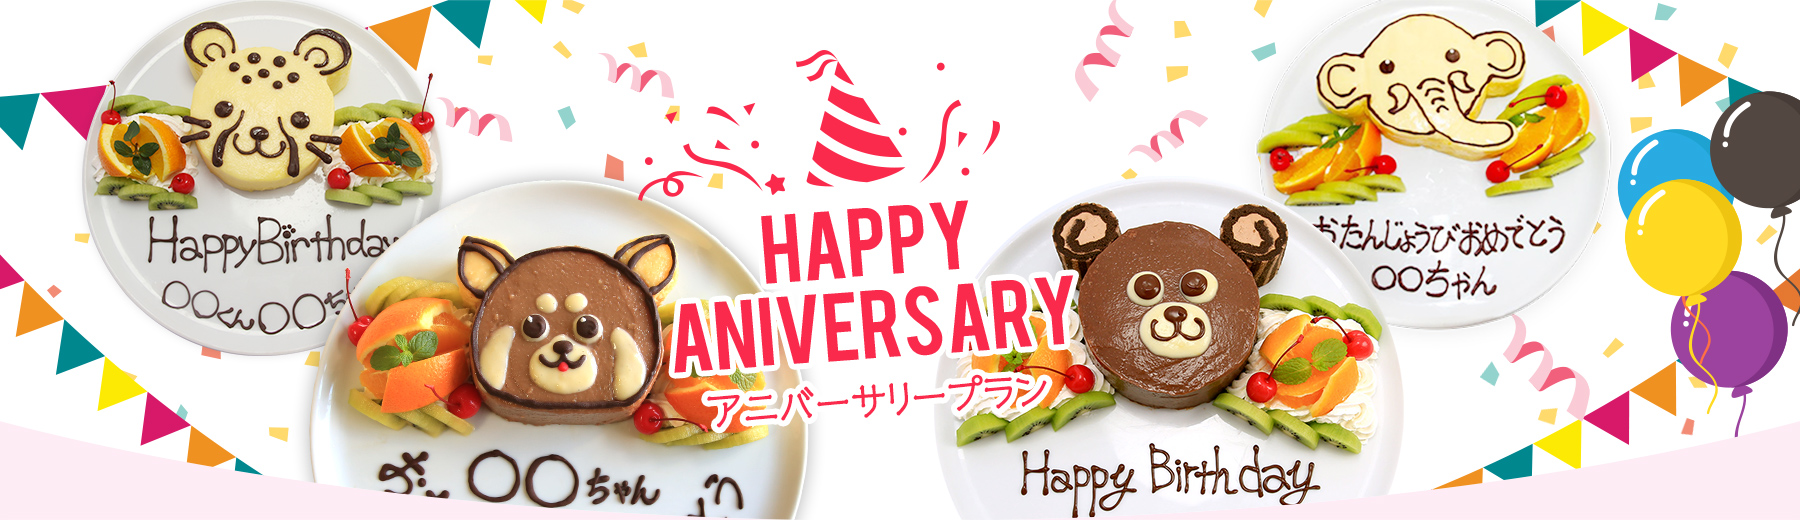 HAPPY ANIVERSARY